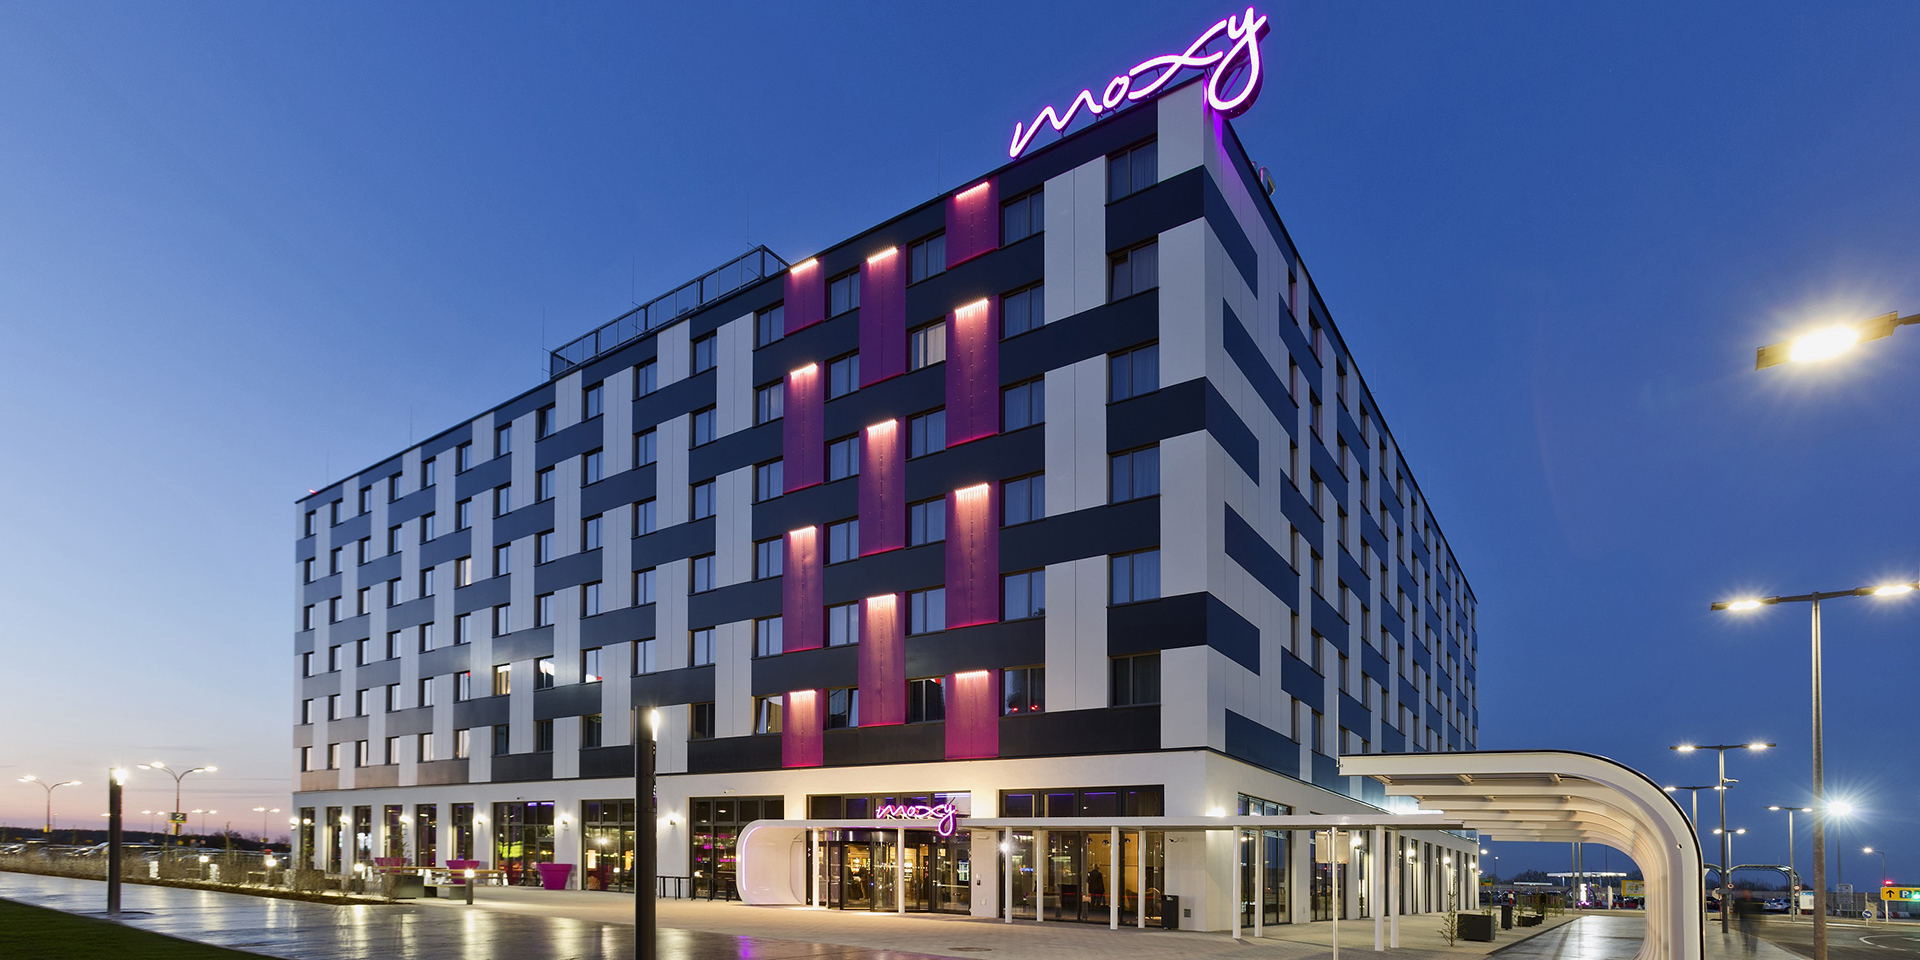 moxy hotels marriott international s bold experiental hotel brand debuts in austria s vibrant. Black Bedroom Furniture Sets. Home Design Ideas